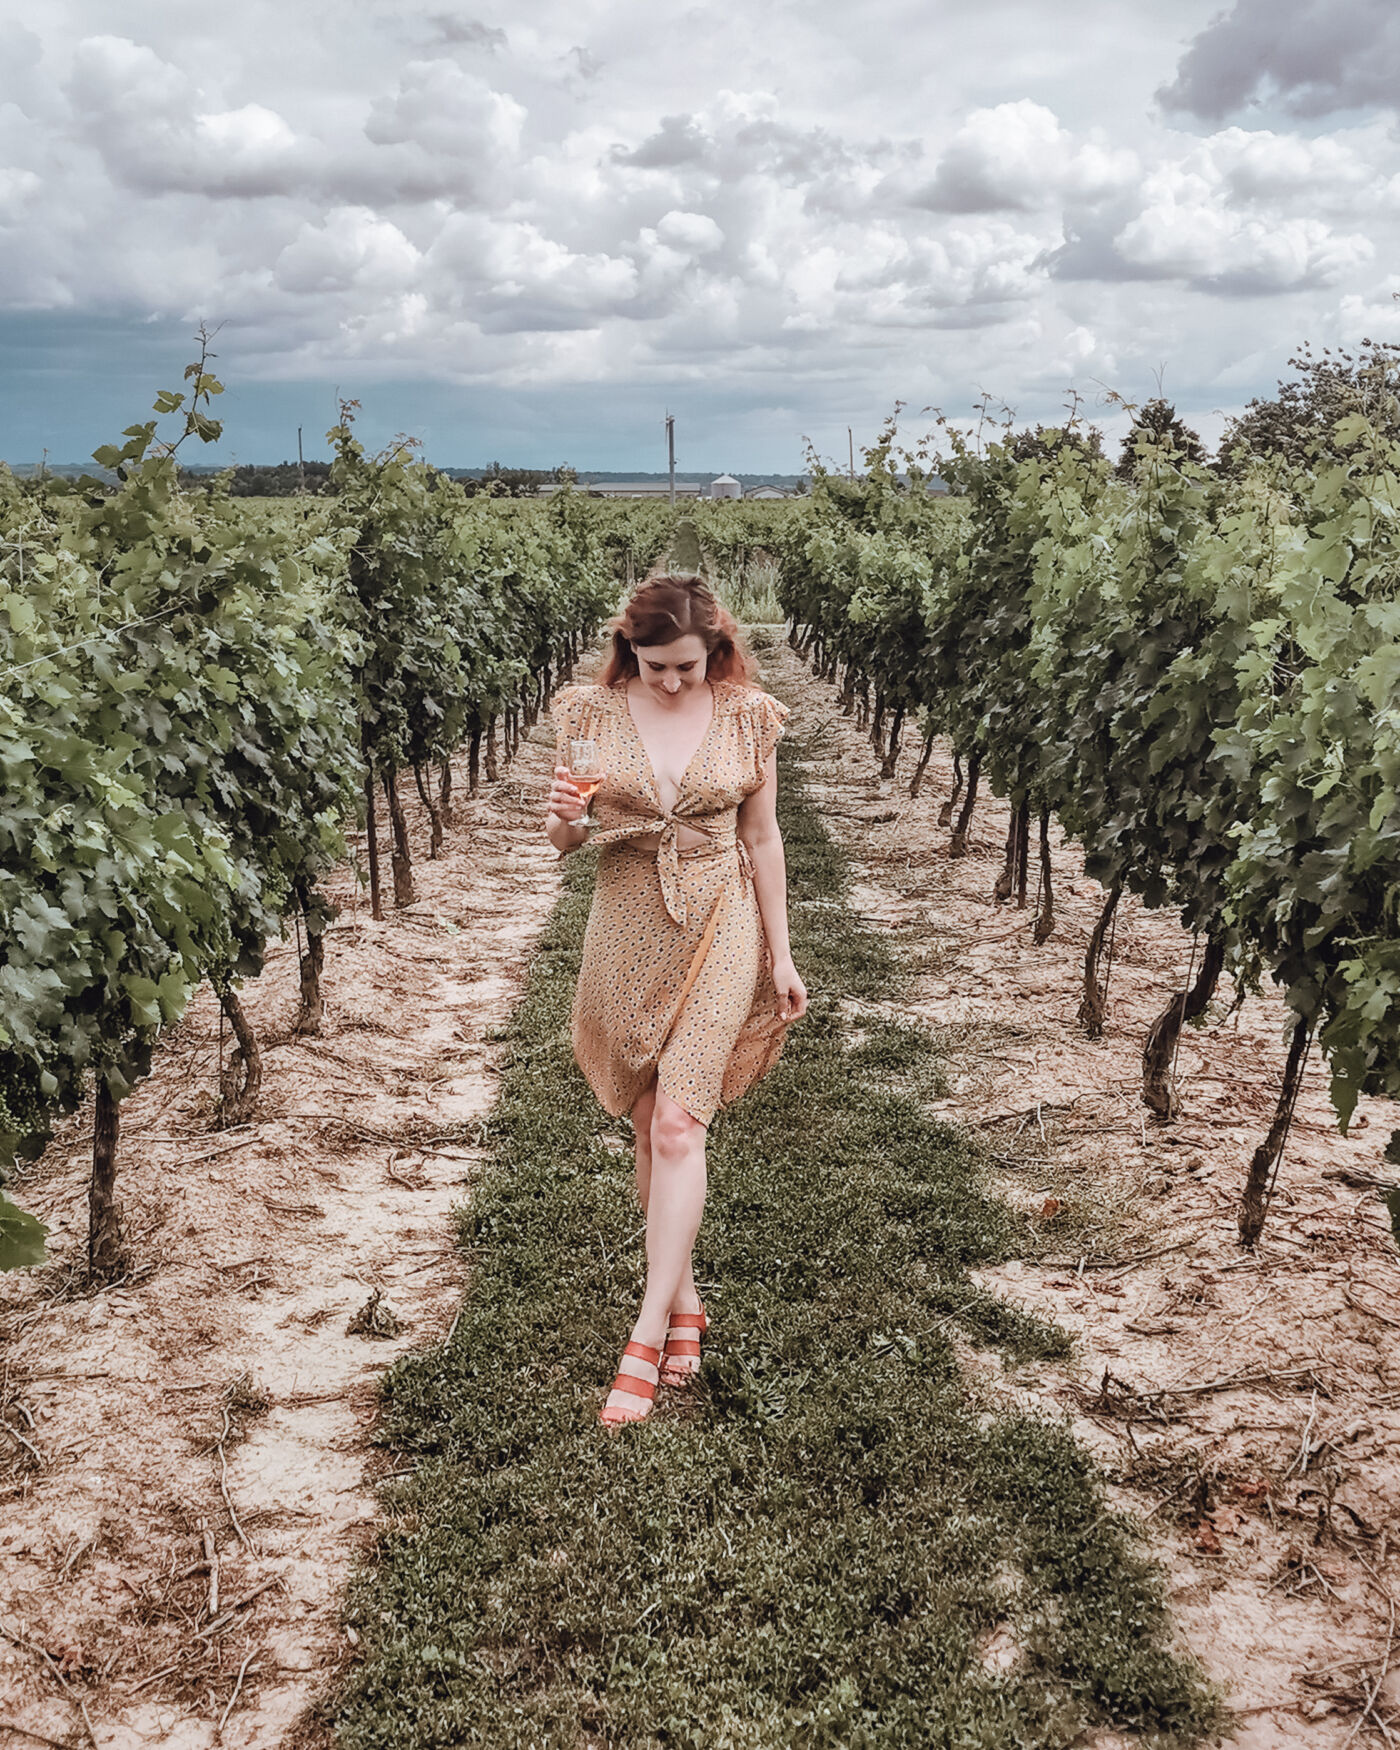 lady wearing a purple dress standing in a vineyard. niagara region wineries to visit now - lakeview wine co